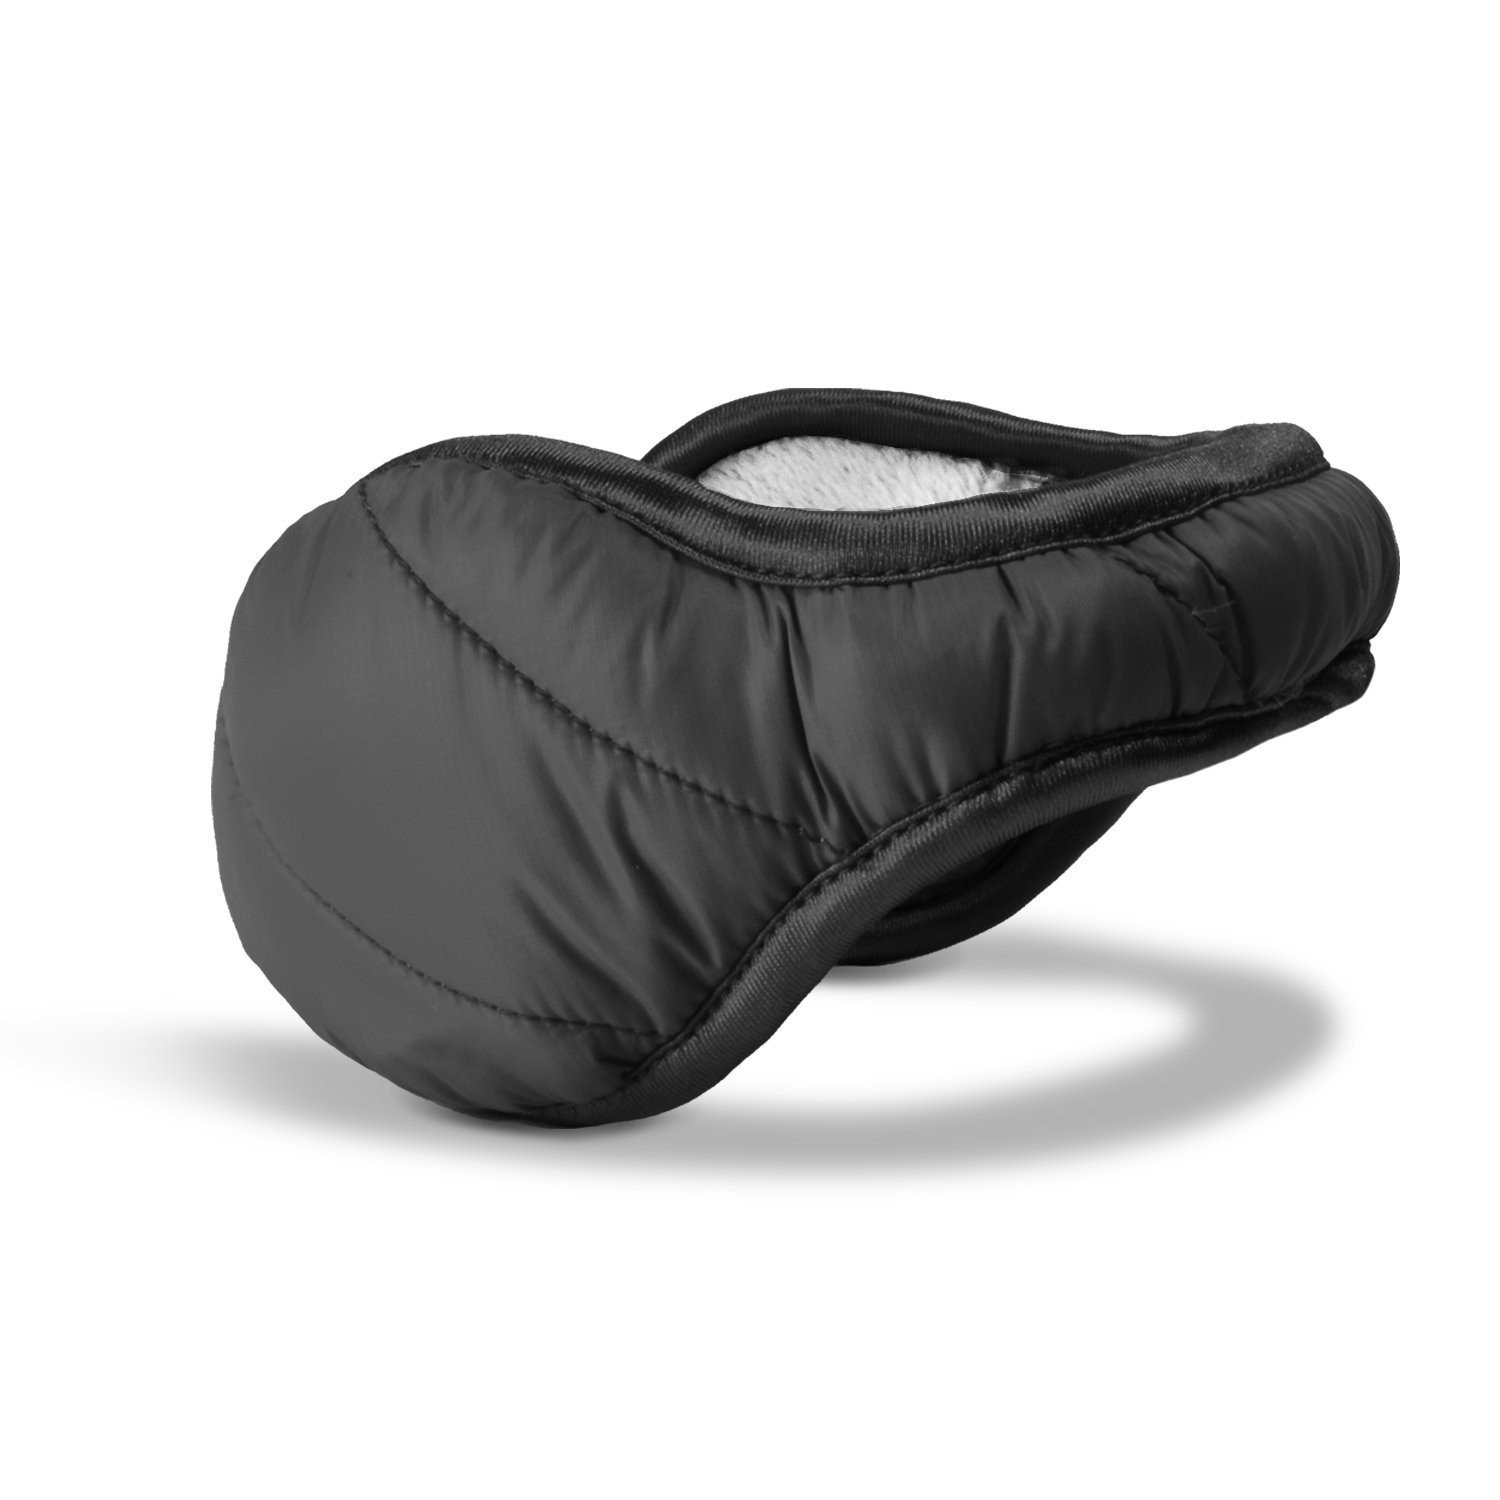 180s Women's Down Ear Warmers (Black With White Interior)